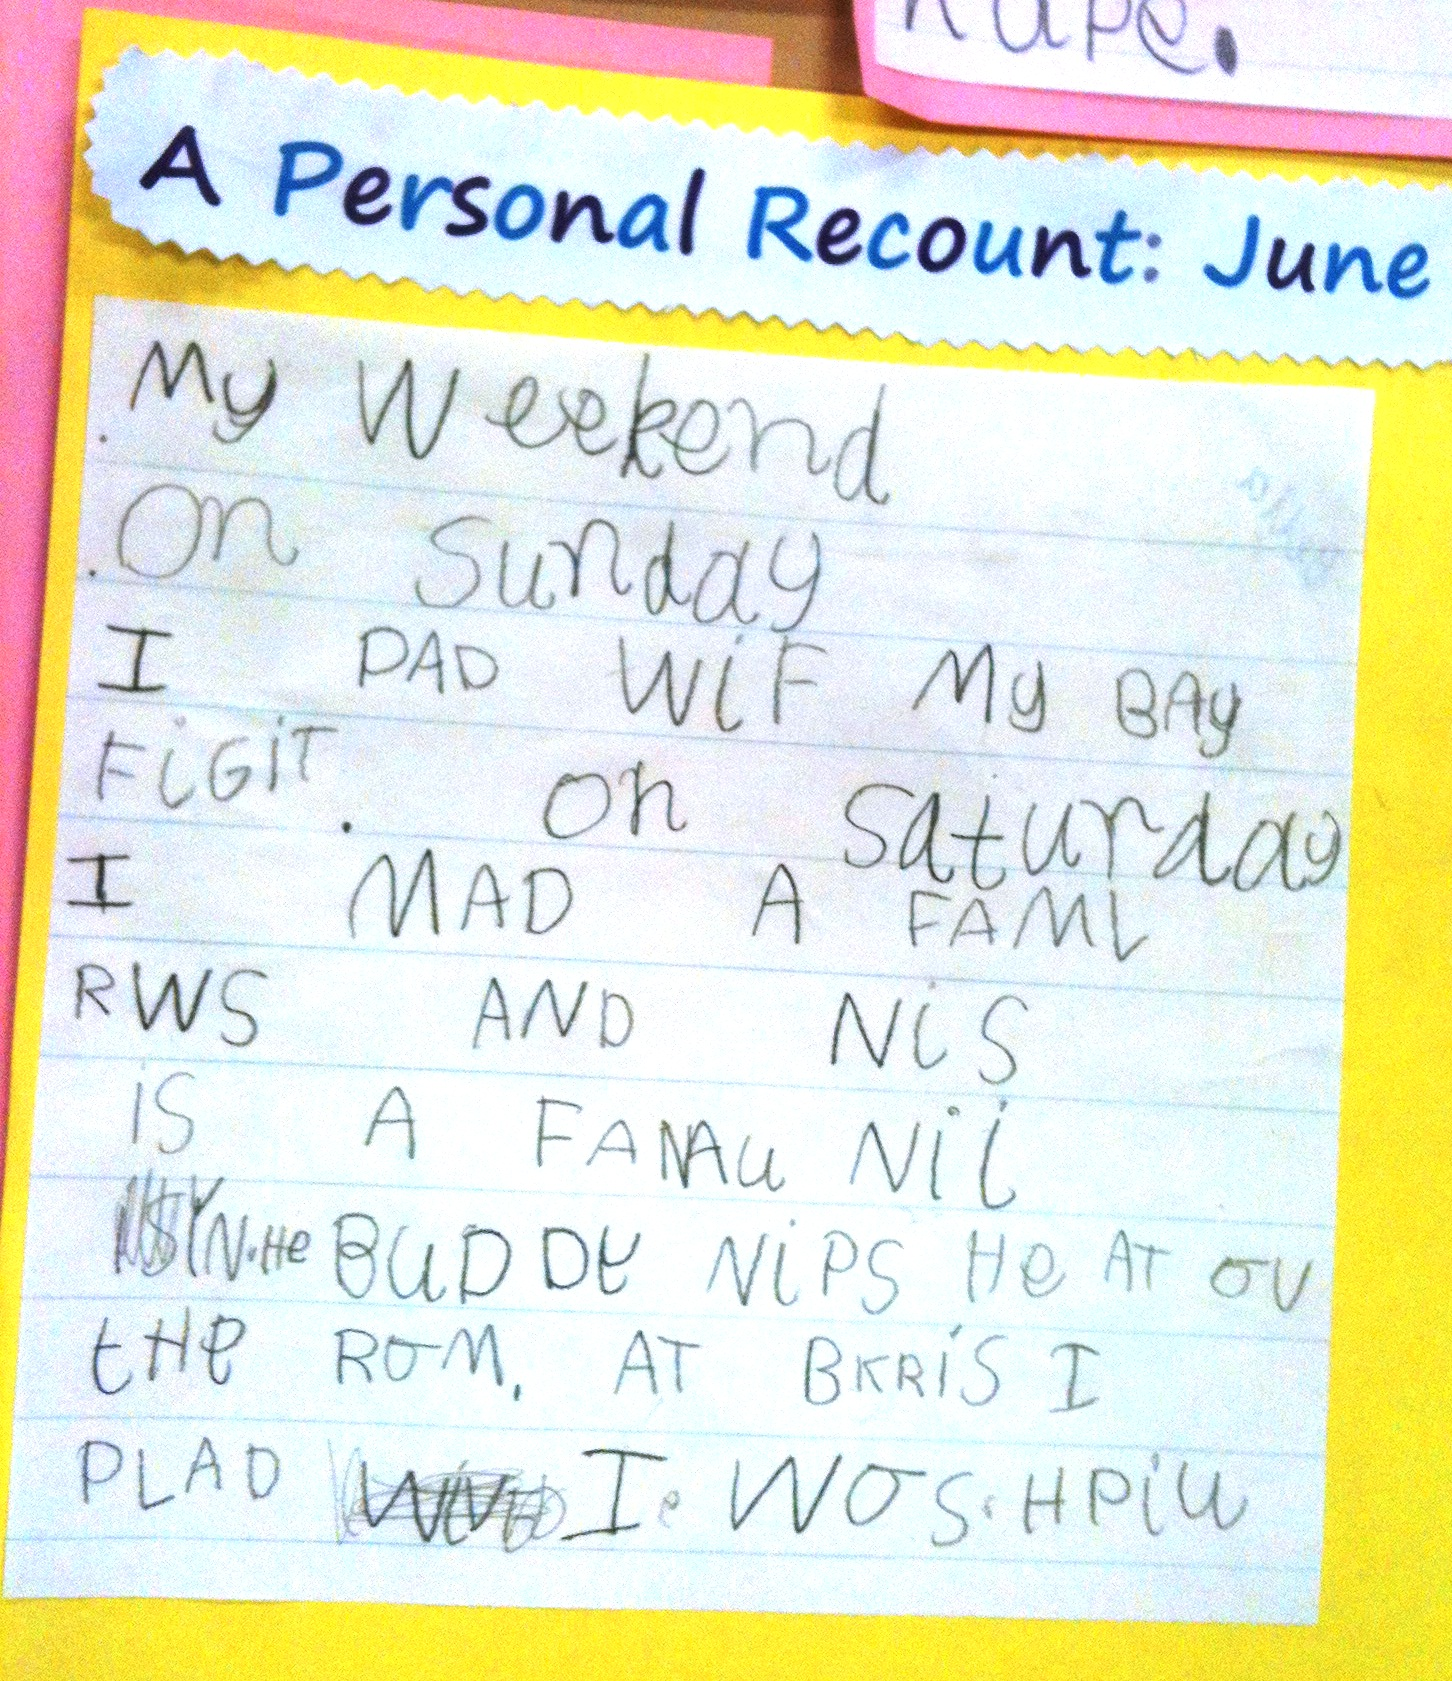 personal recount essay How to write a personal recount writing a personal recount requires you to retell an activity or event that happened in your own life you must structure your story in a way that makes.